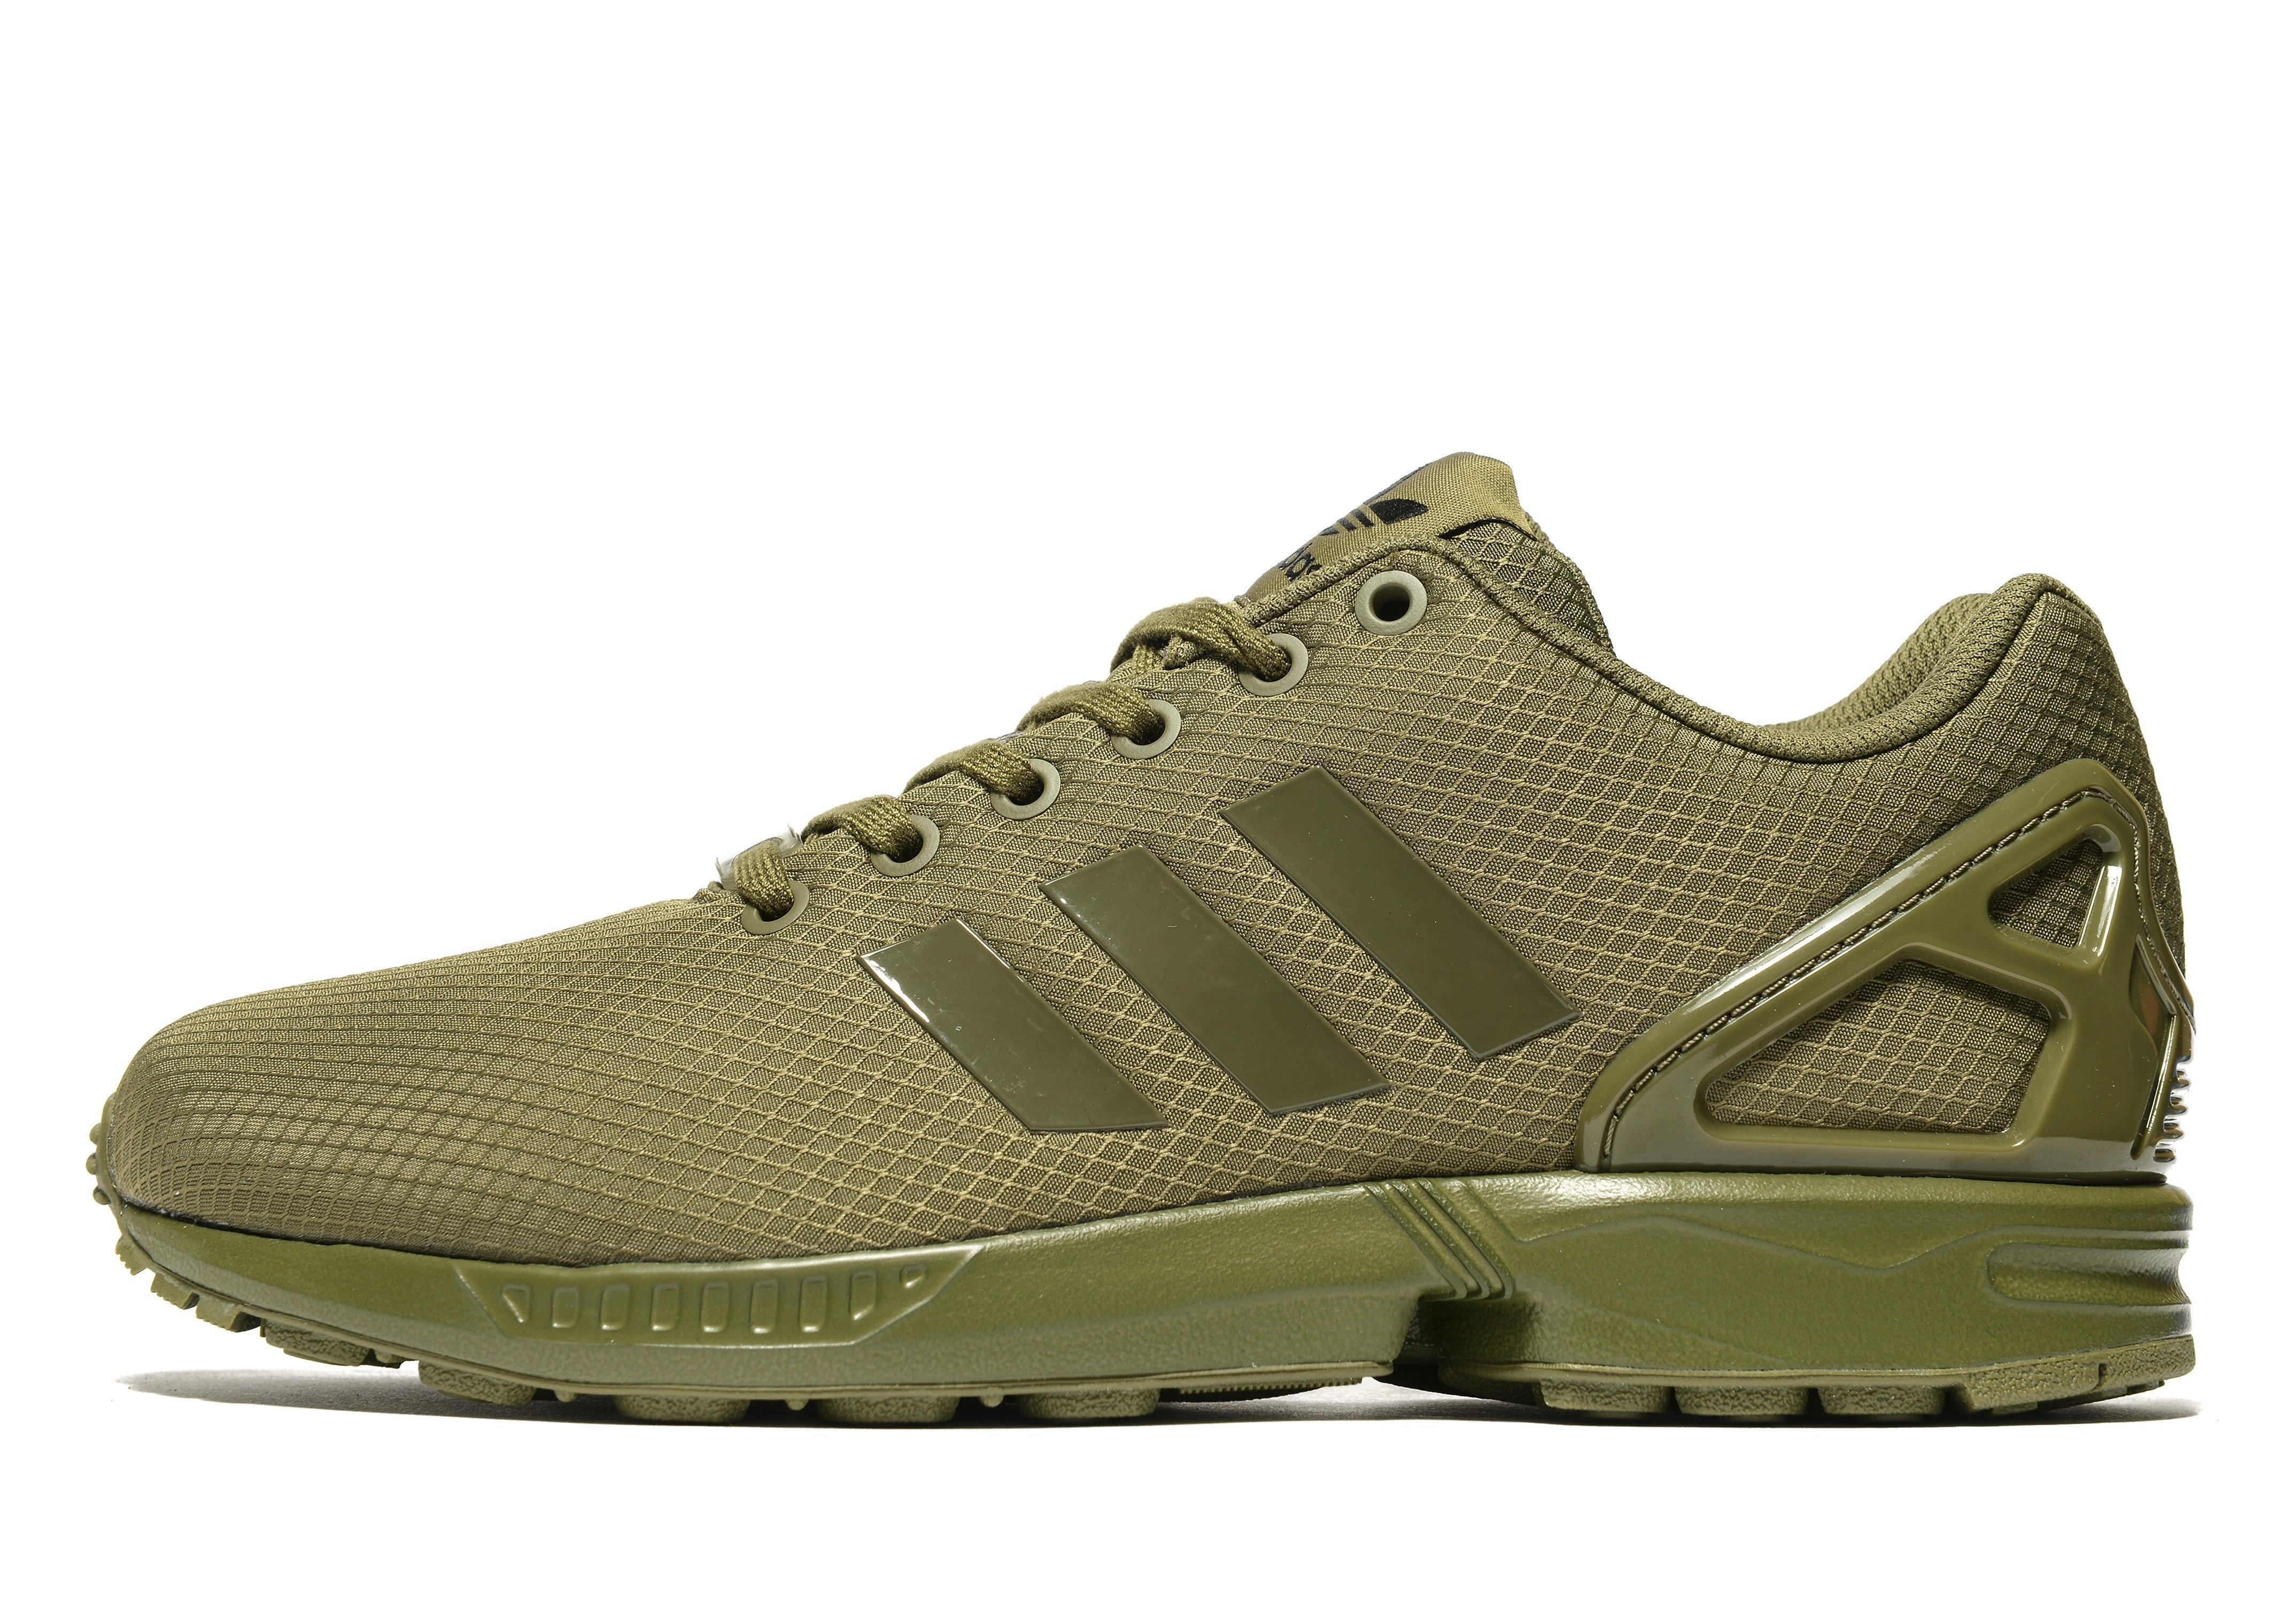 91e8a9e60a8bb adidas Originals Zx Flux Ripstop in Green for Men - Lyst